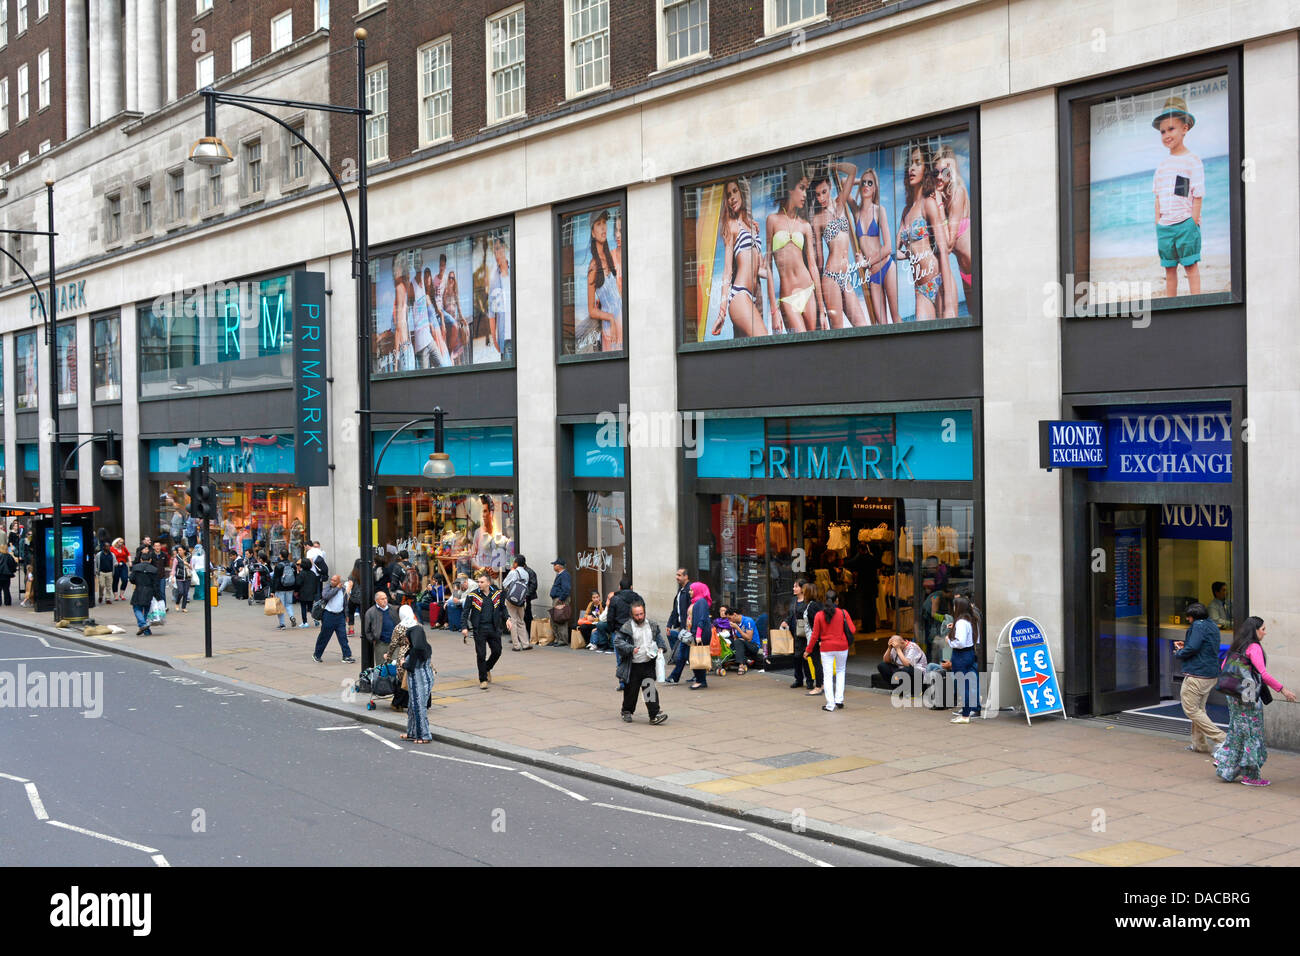 Primark clothing store in Oxford Street London - Stock Image